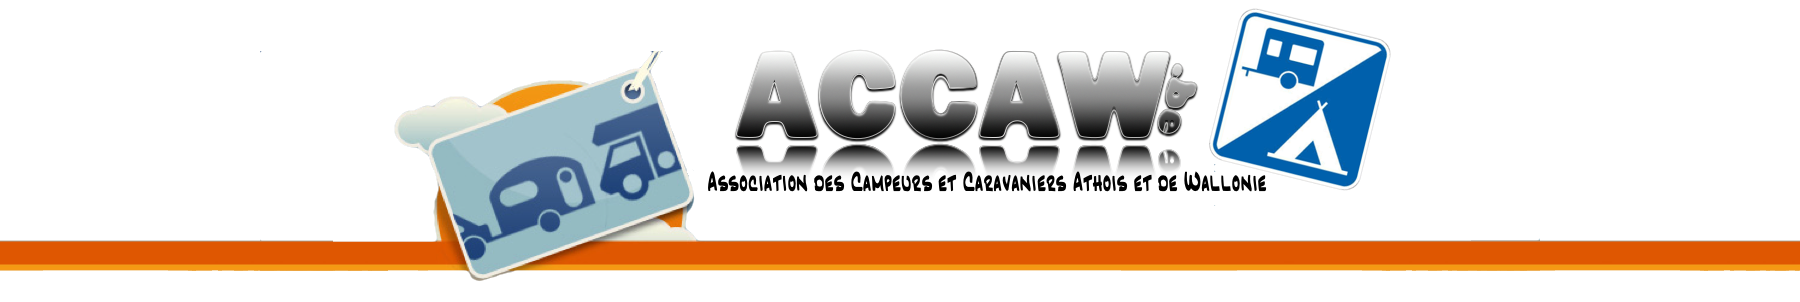 ACCAW